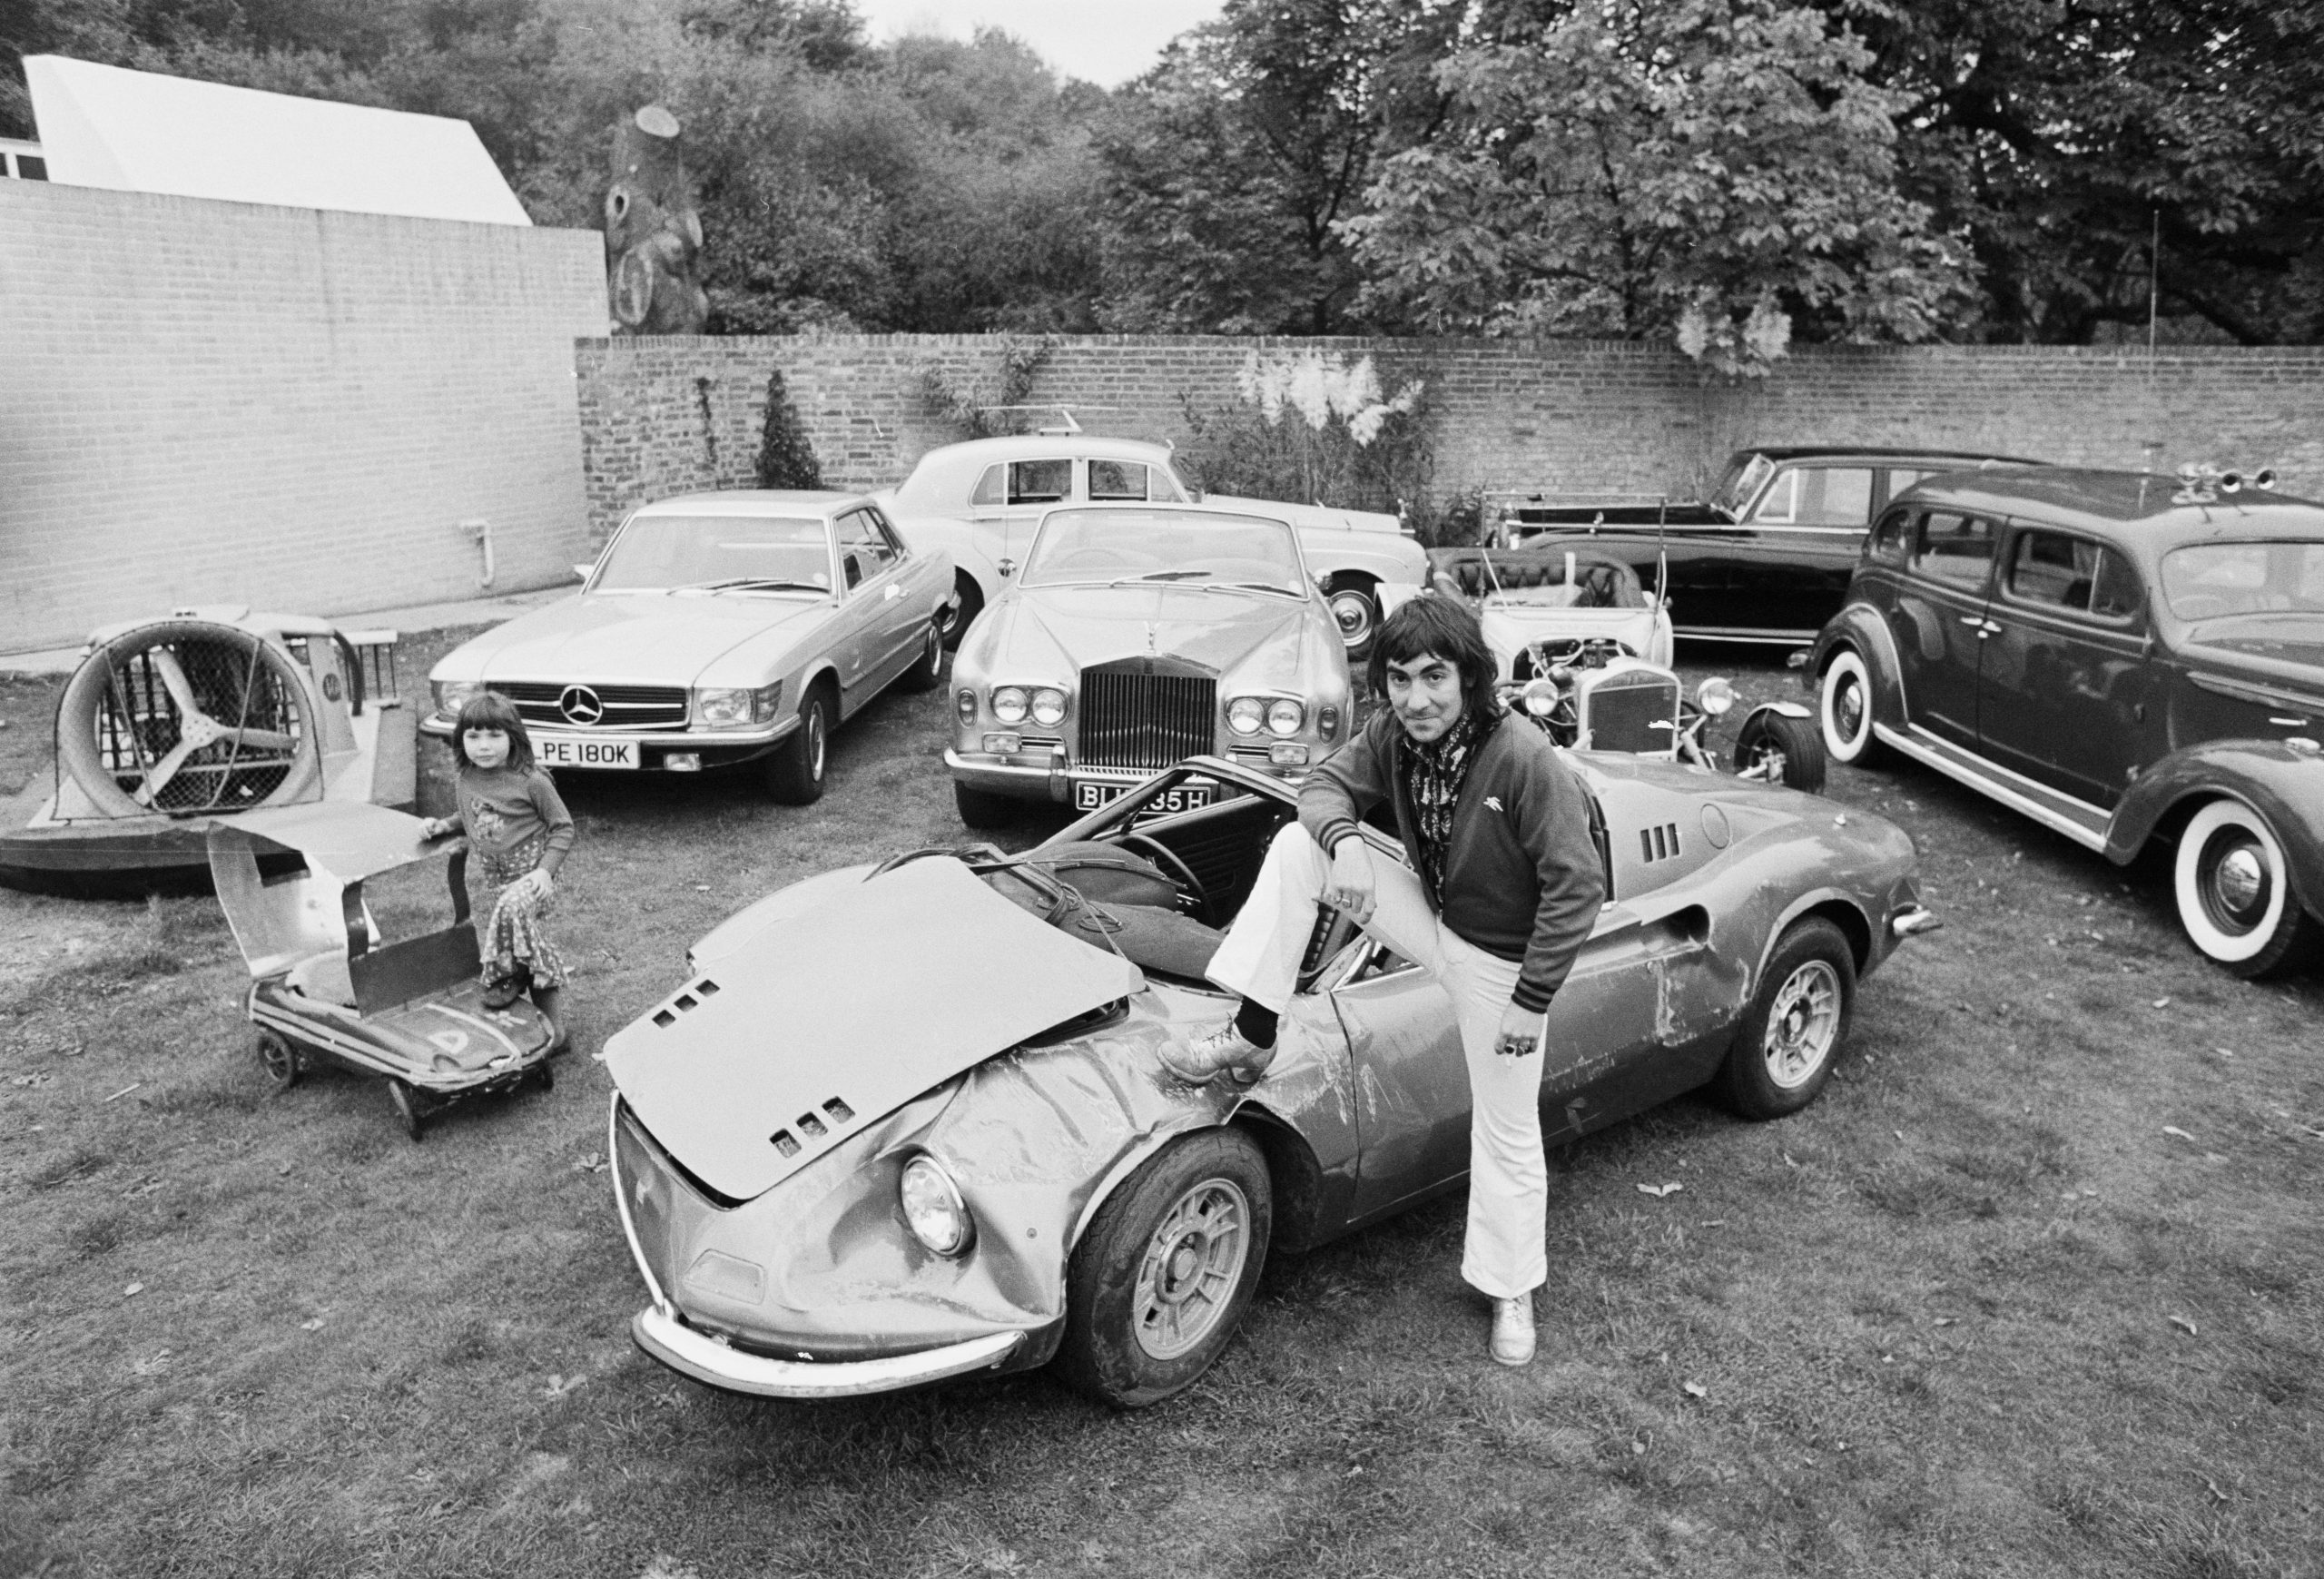 20 rock stars' cars: For those about to rock – and drive – we salute you